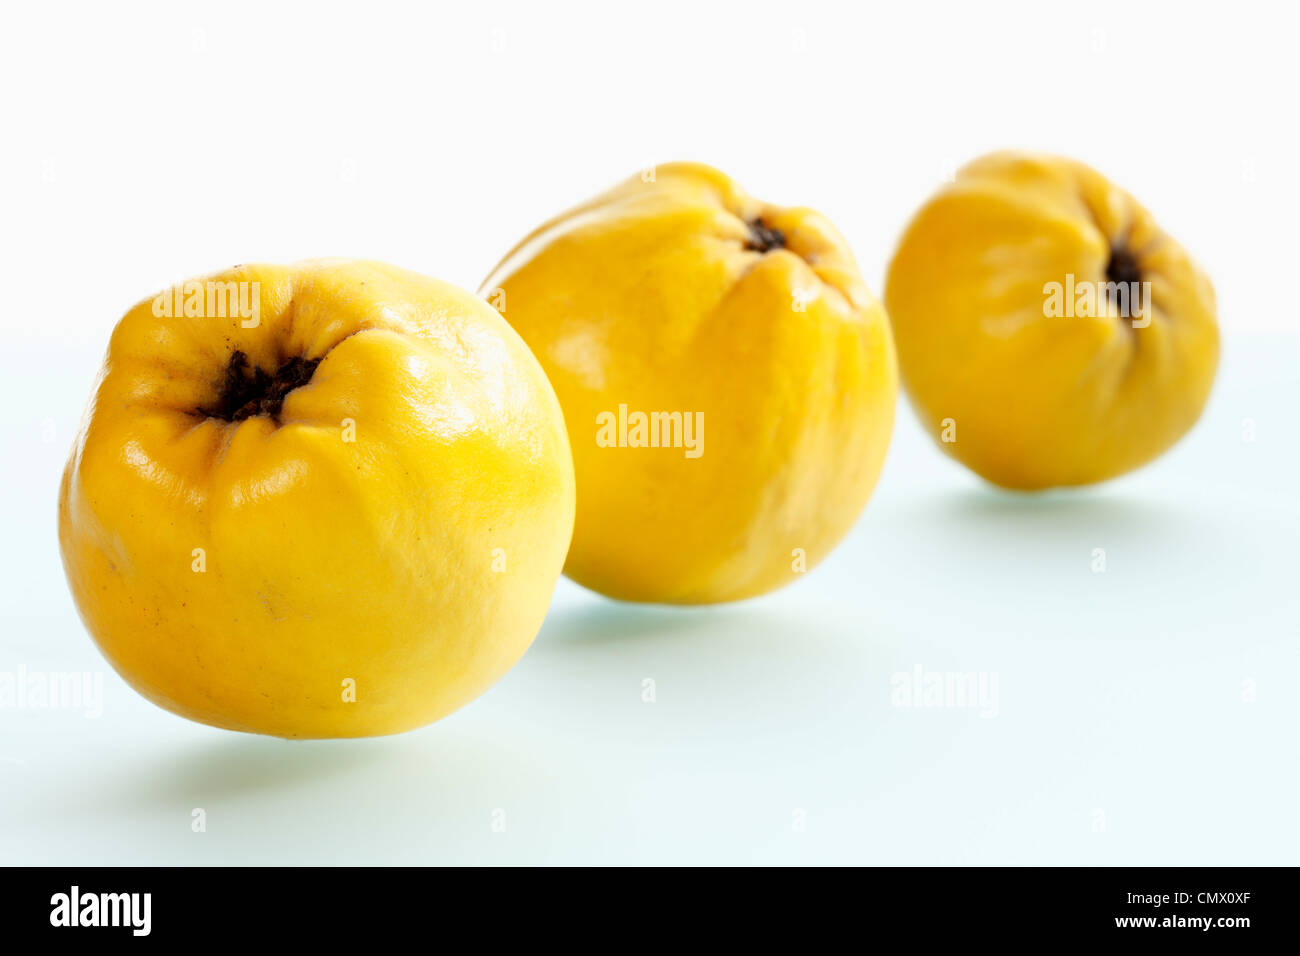 Quinces on white background, close up - Stock Image